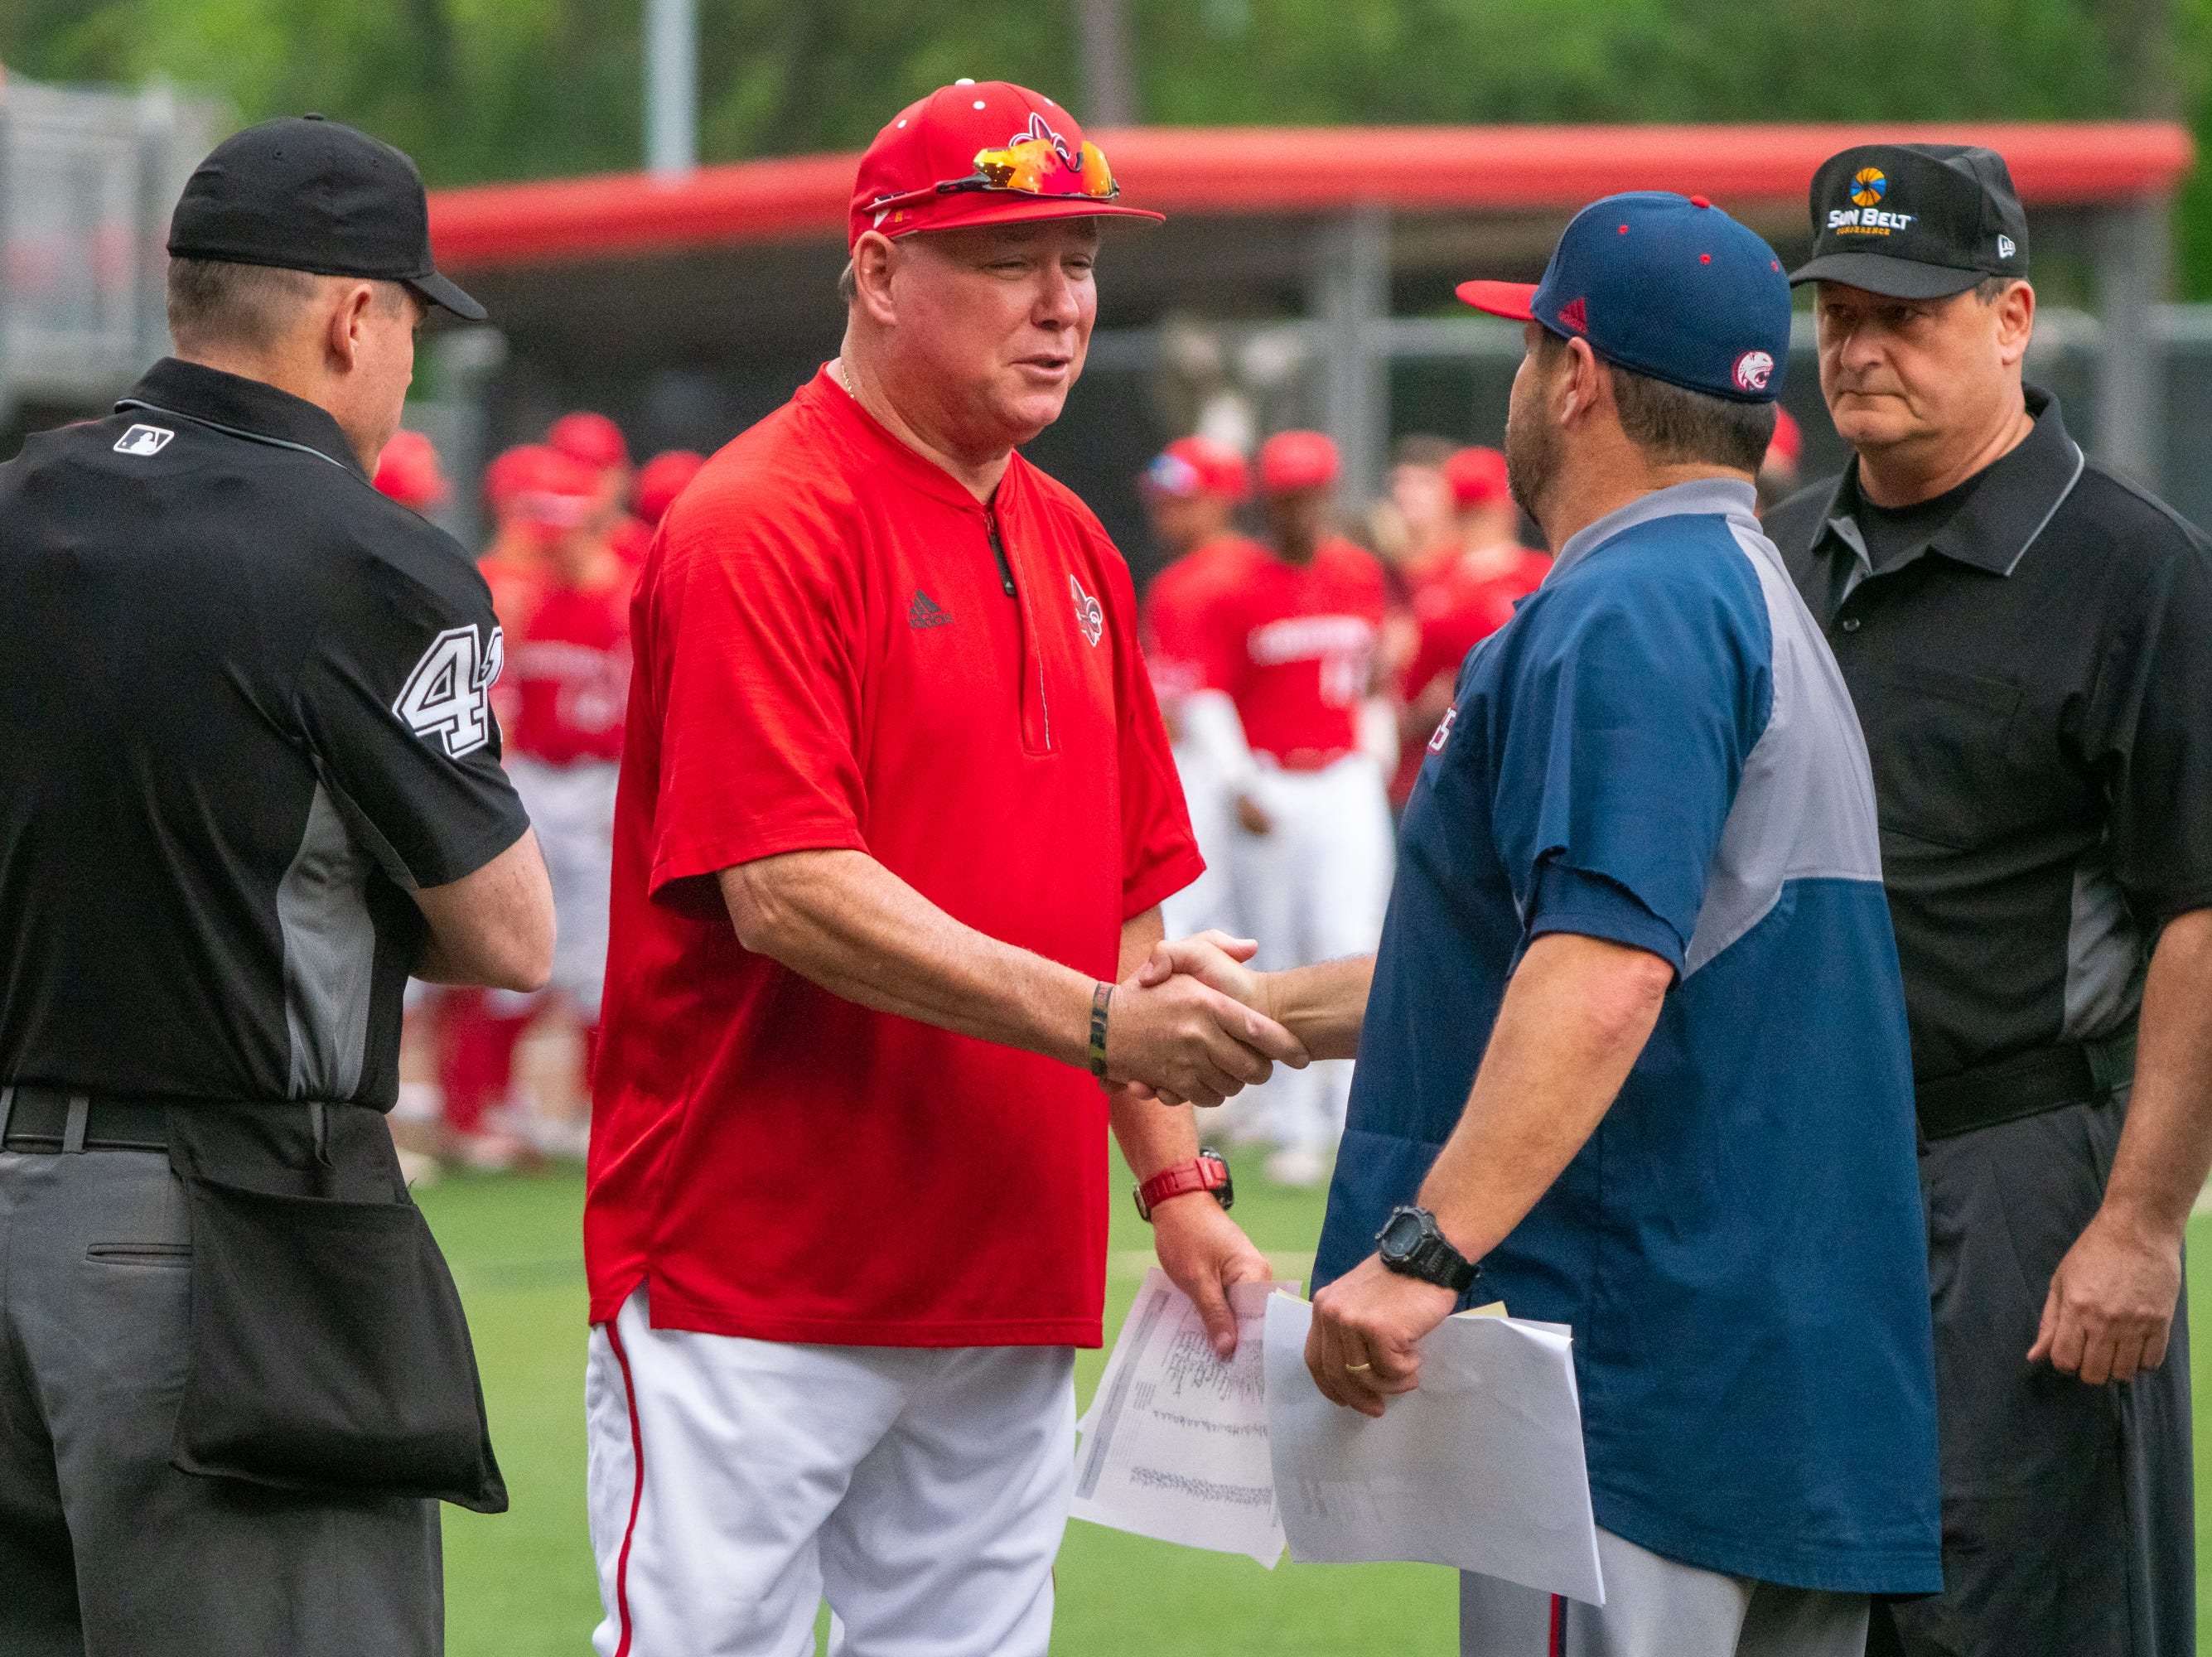 """UL's head coach Tony Robichaux meets with South Alabama's head coach Mark Calvi at home plate before the game as the Ragin' Cajuns take on the South Alabama Jaguars at M.L. """"Tigue"""" Moore Field on Friday, April 4, 2019."""